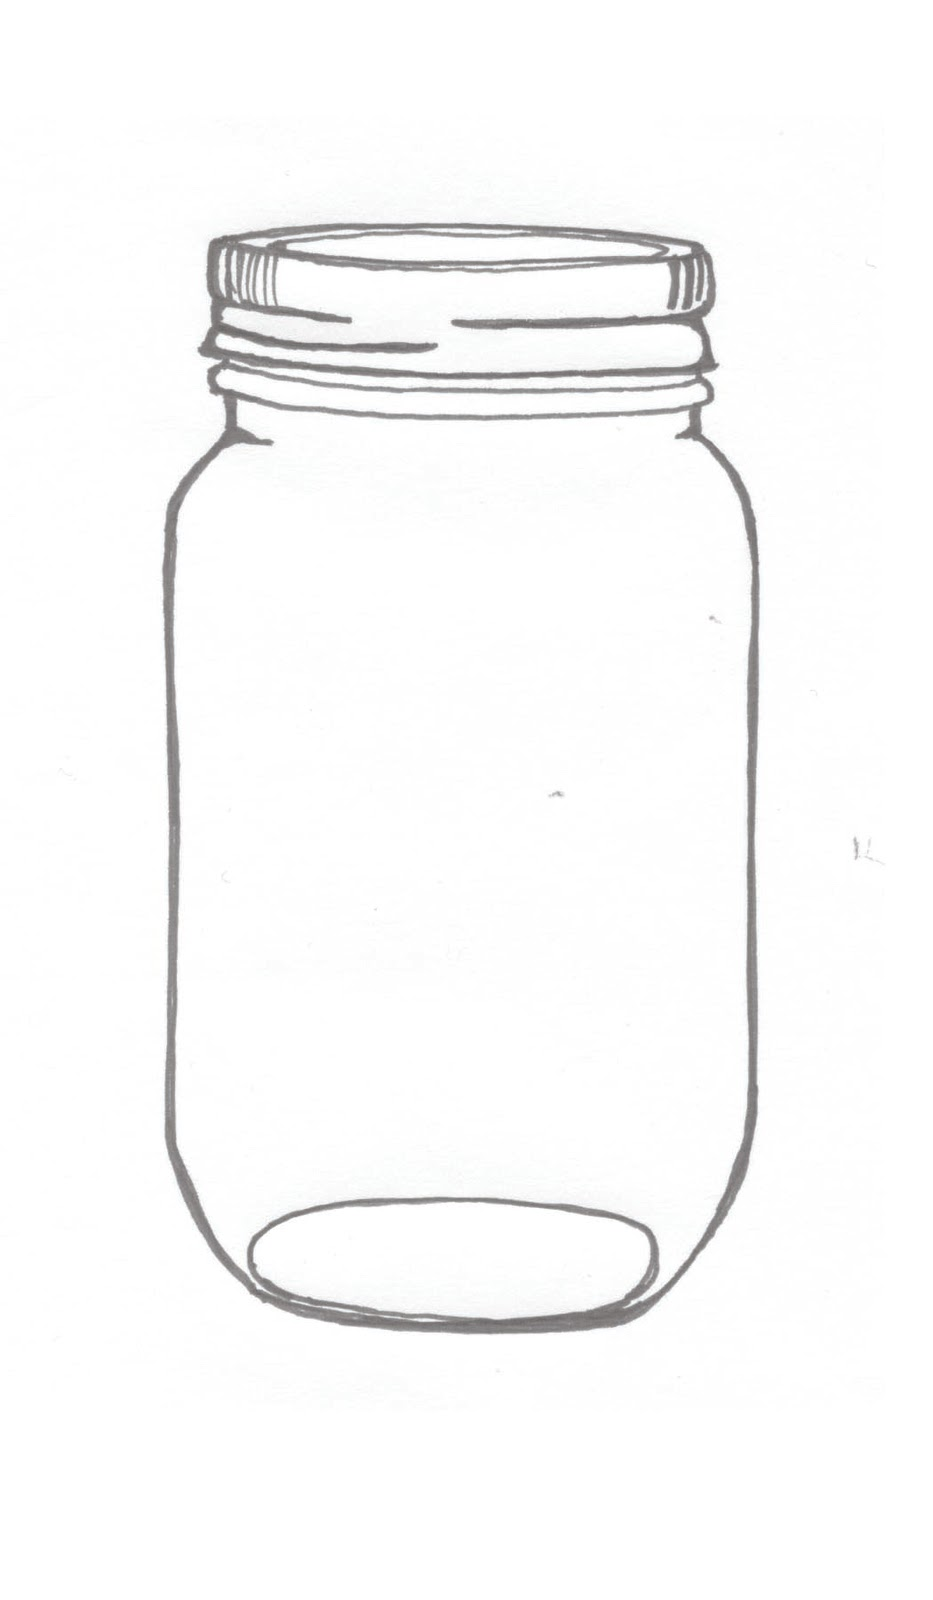 Drawn jar Illustrations mason ink drawing An